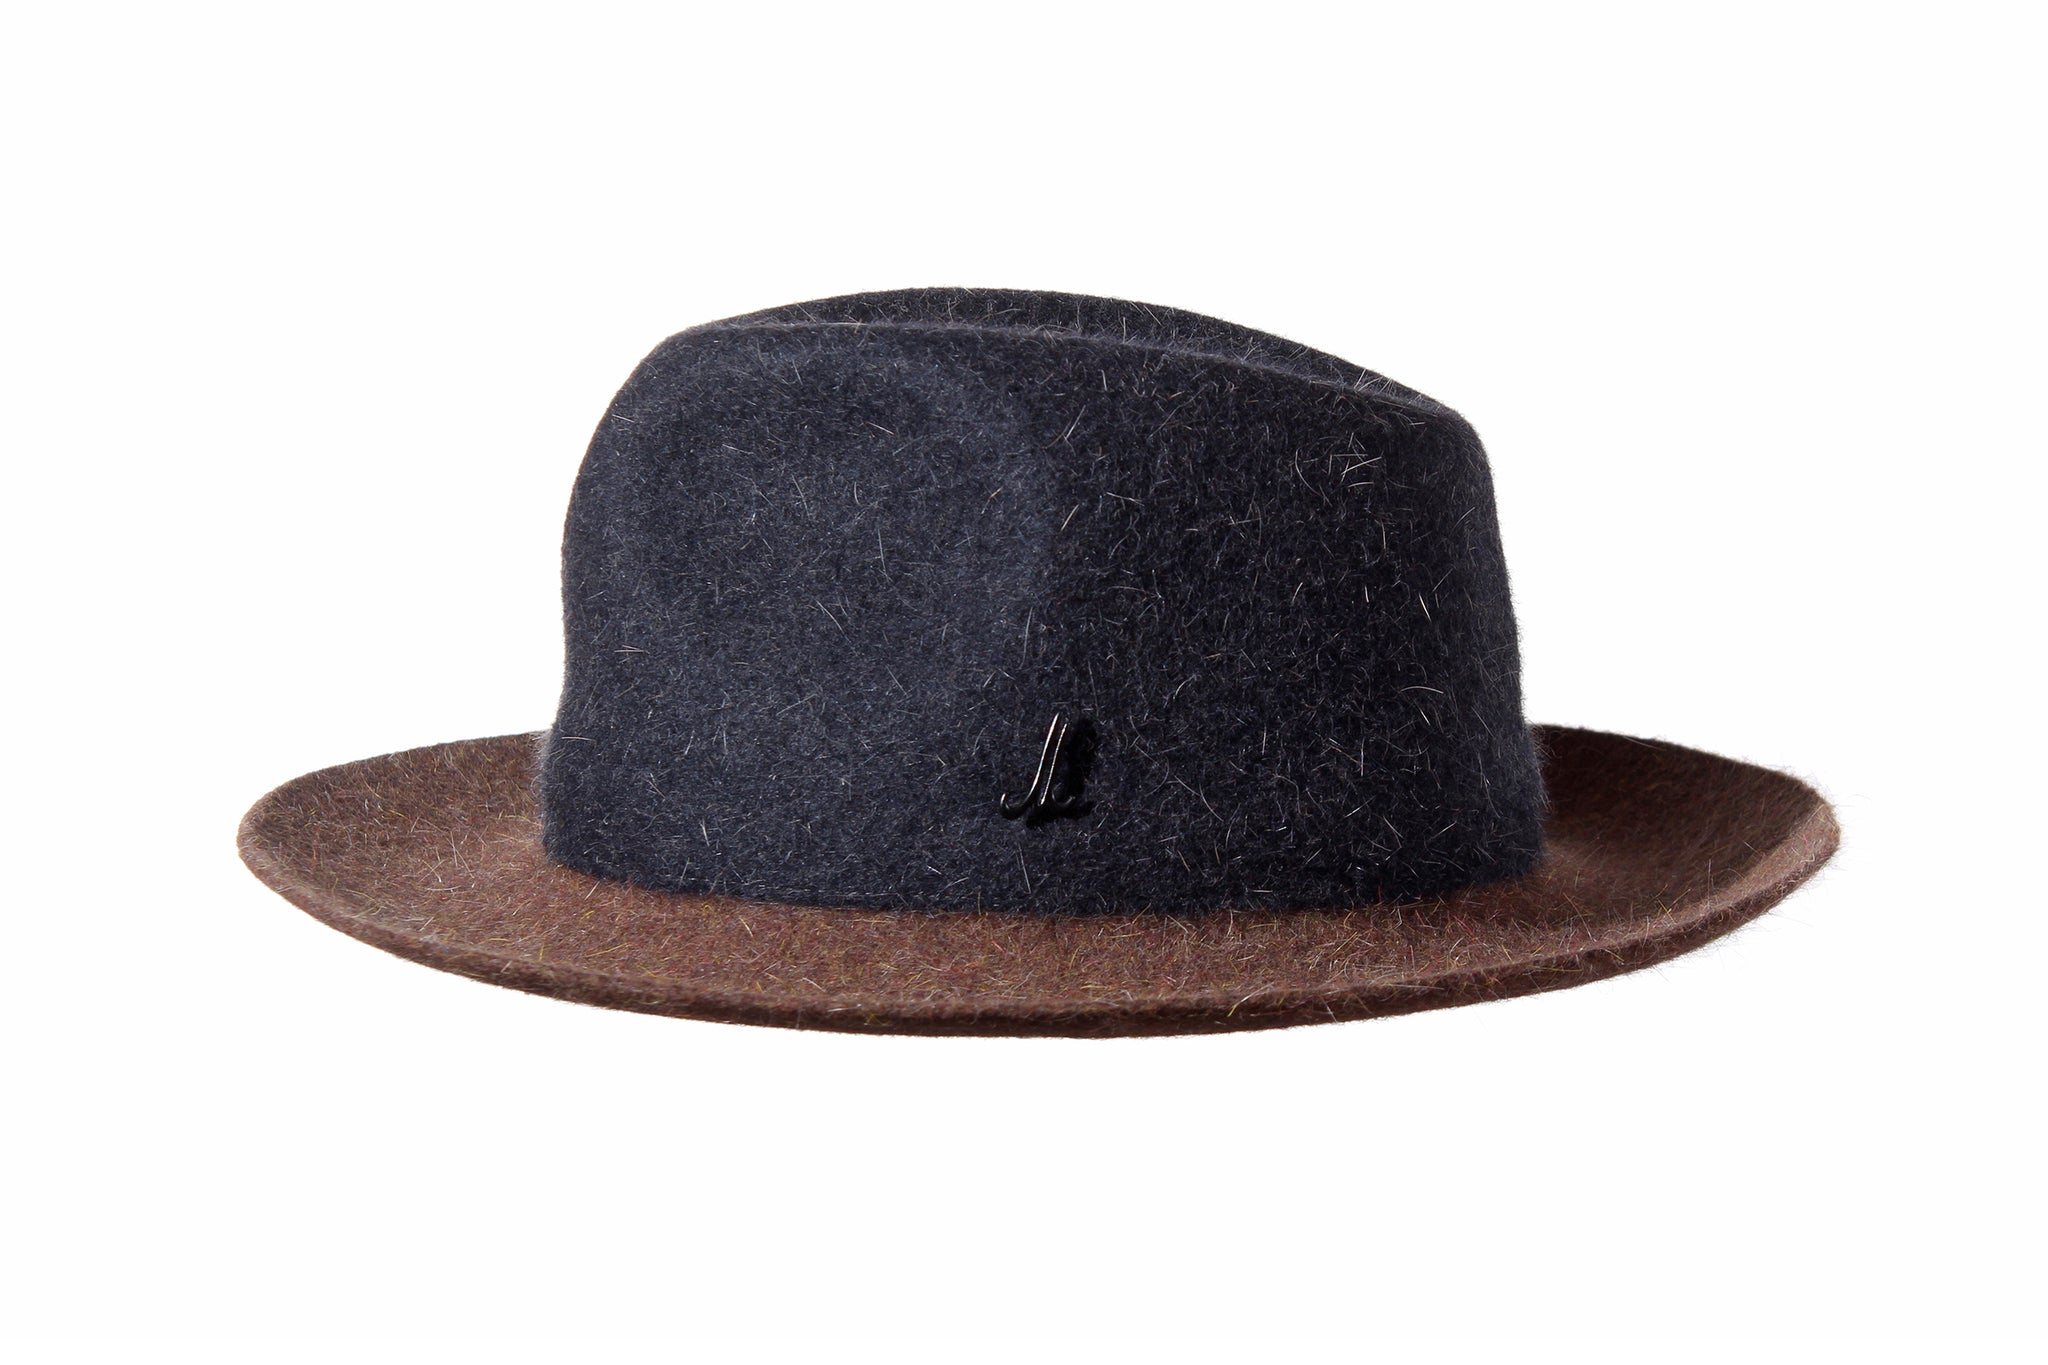 Dark Blue and Brown Unisex Brimmed Hat